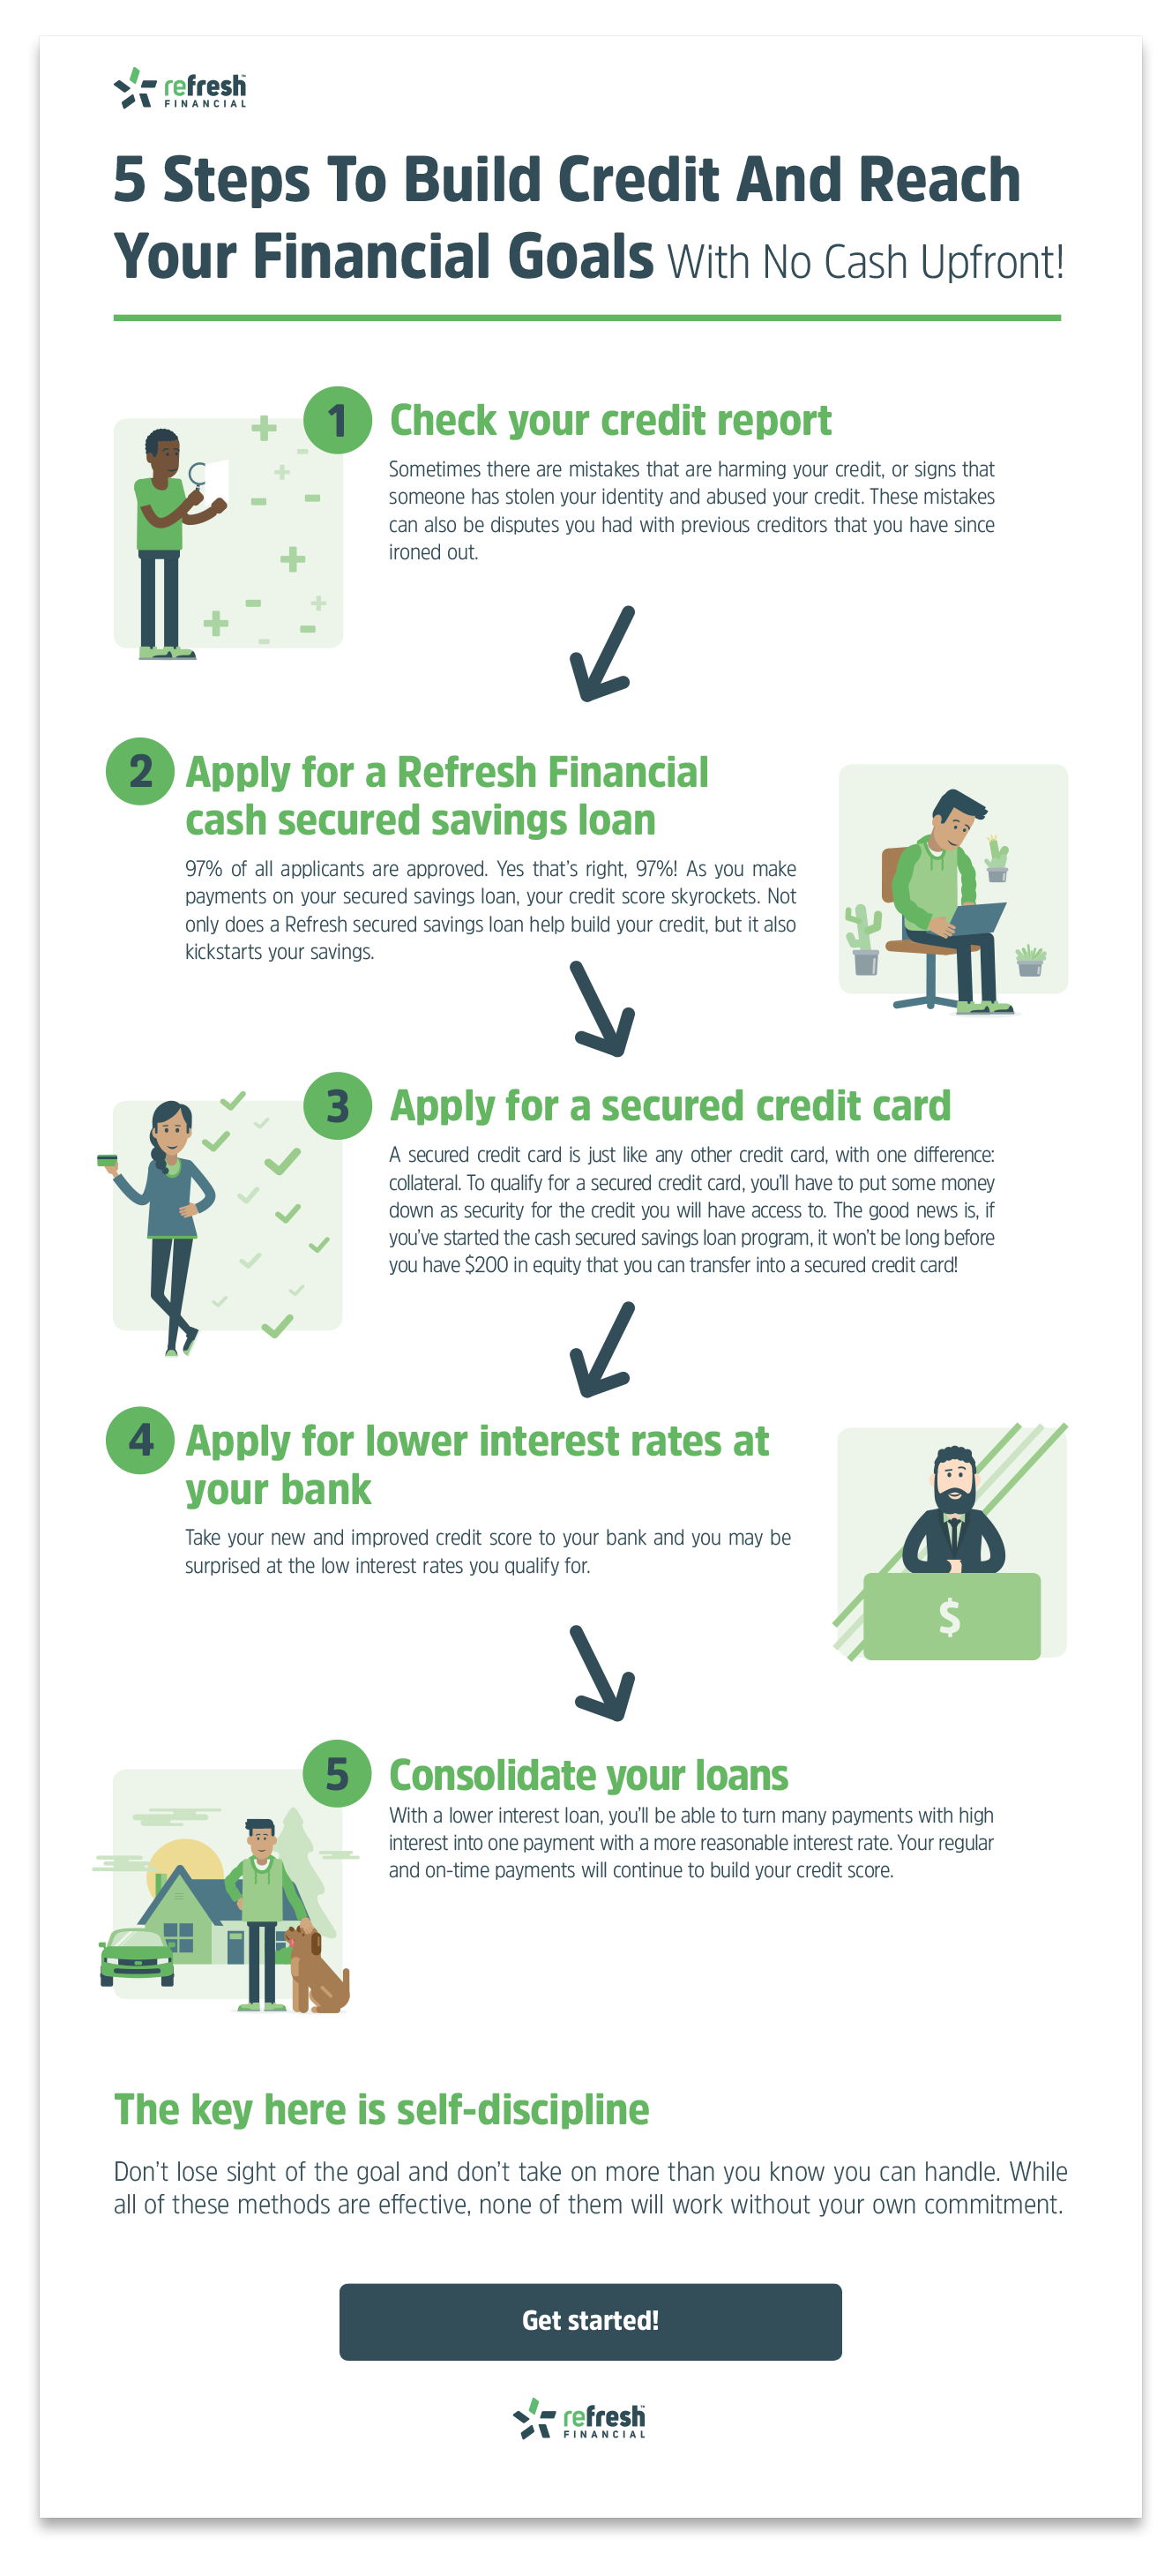 HOW TO EARN CREDIT SCORE FAST